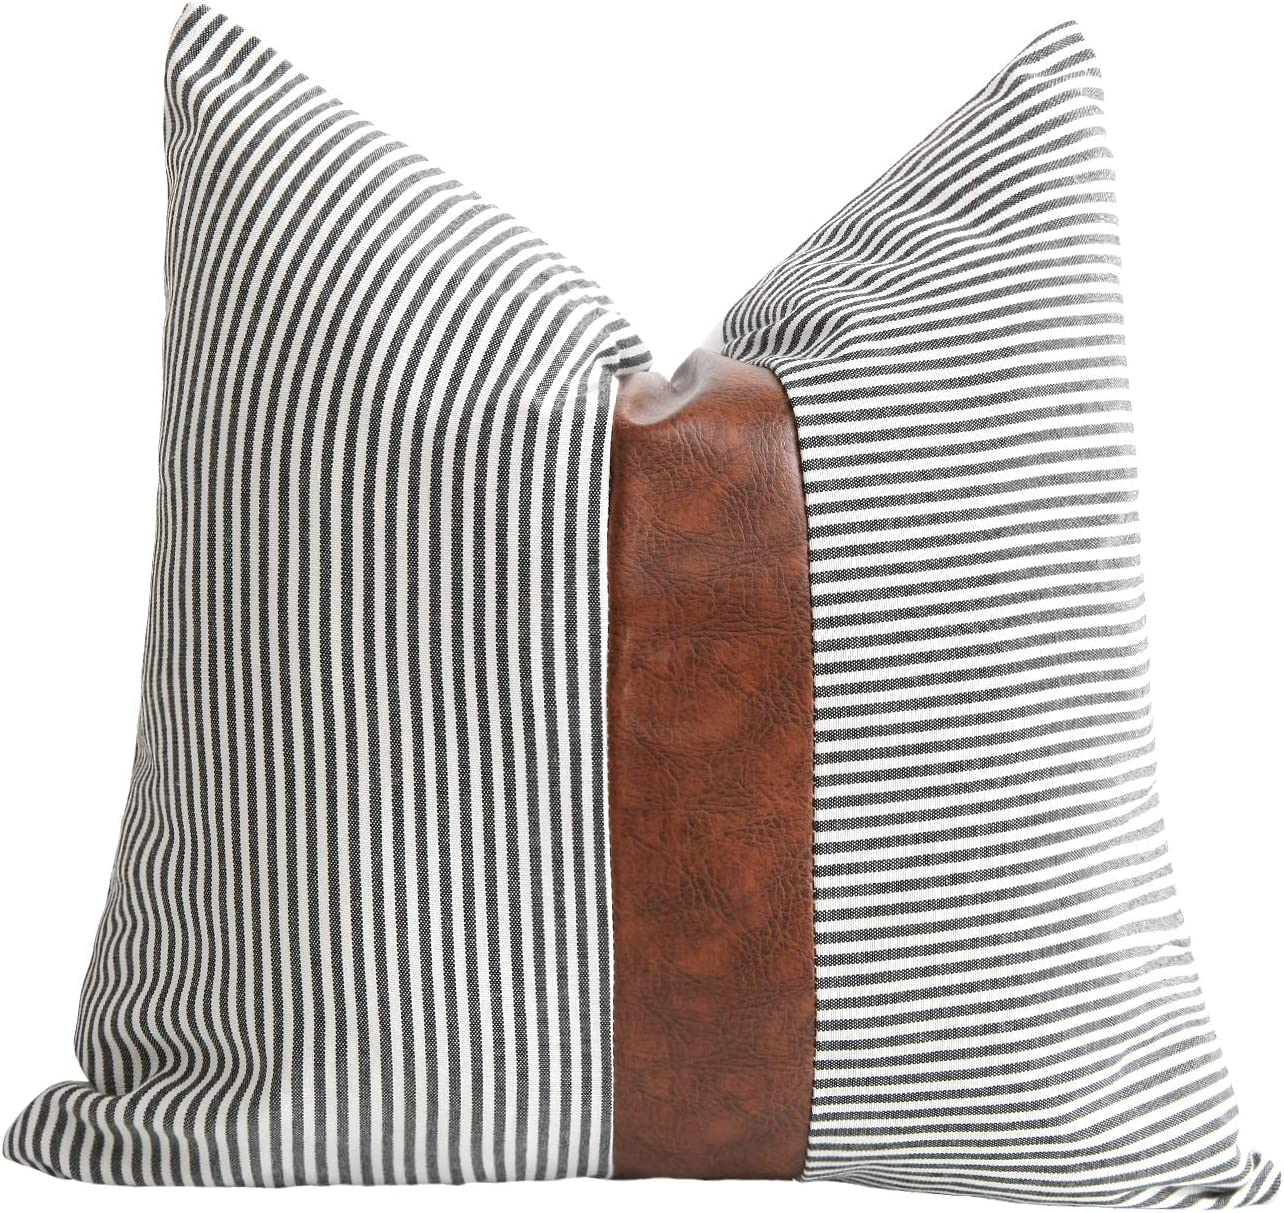 Amazon Com Merrycolor Farmhouse Decorative Throw Pillow Covers For Couch Stripe Faux Leather Accent Pillow Cover Boho Modern Decor Pillow Case 18 X 18 Inch Black Home Kitchen